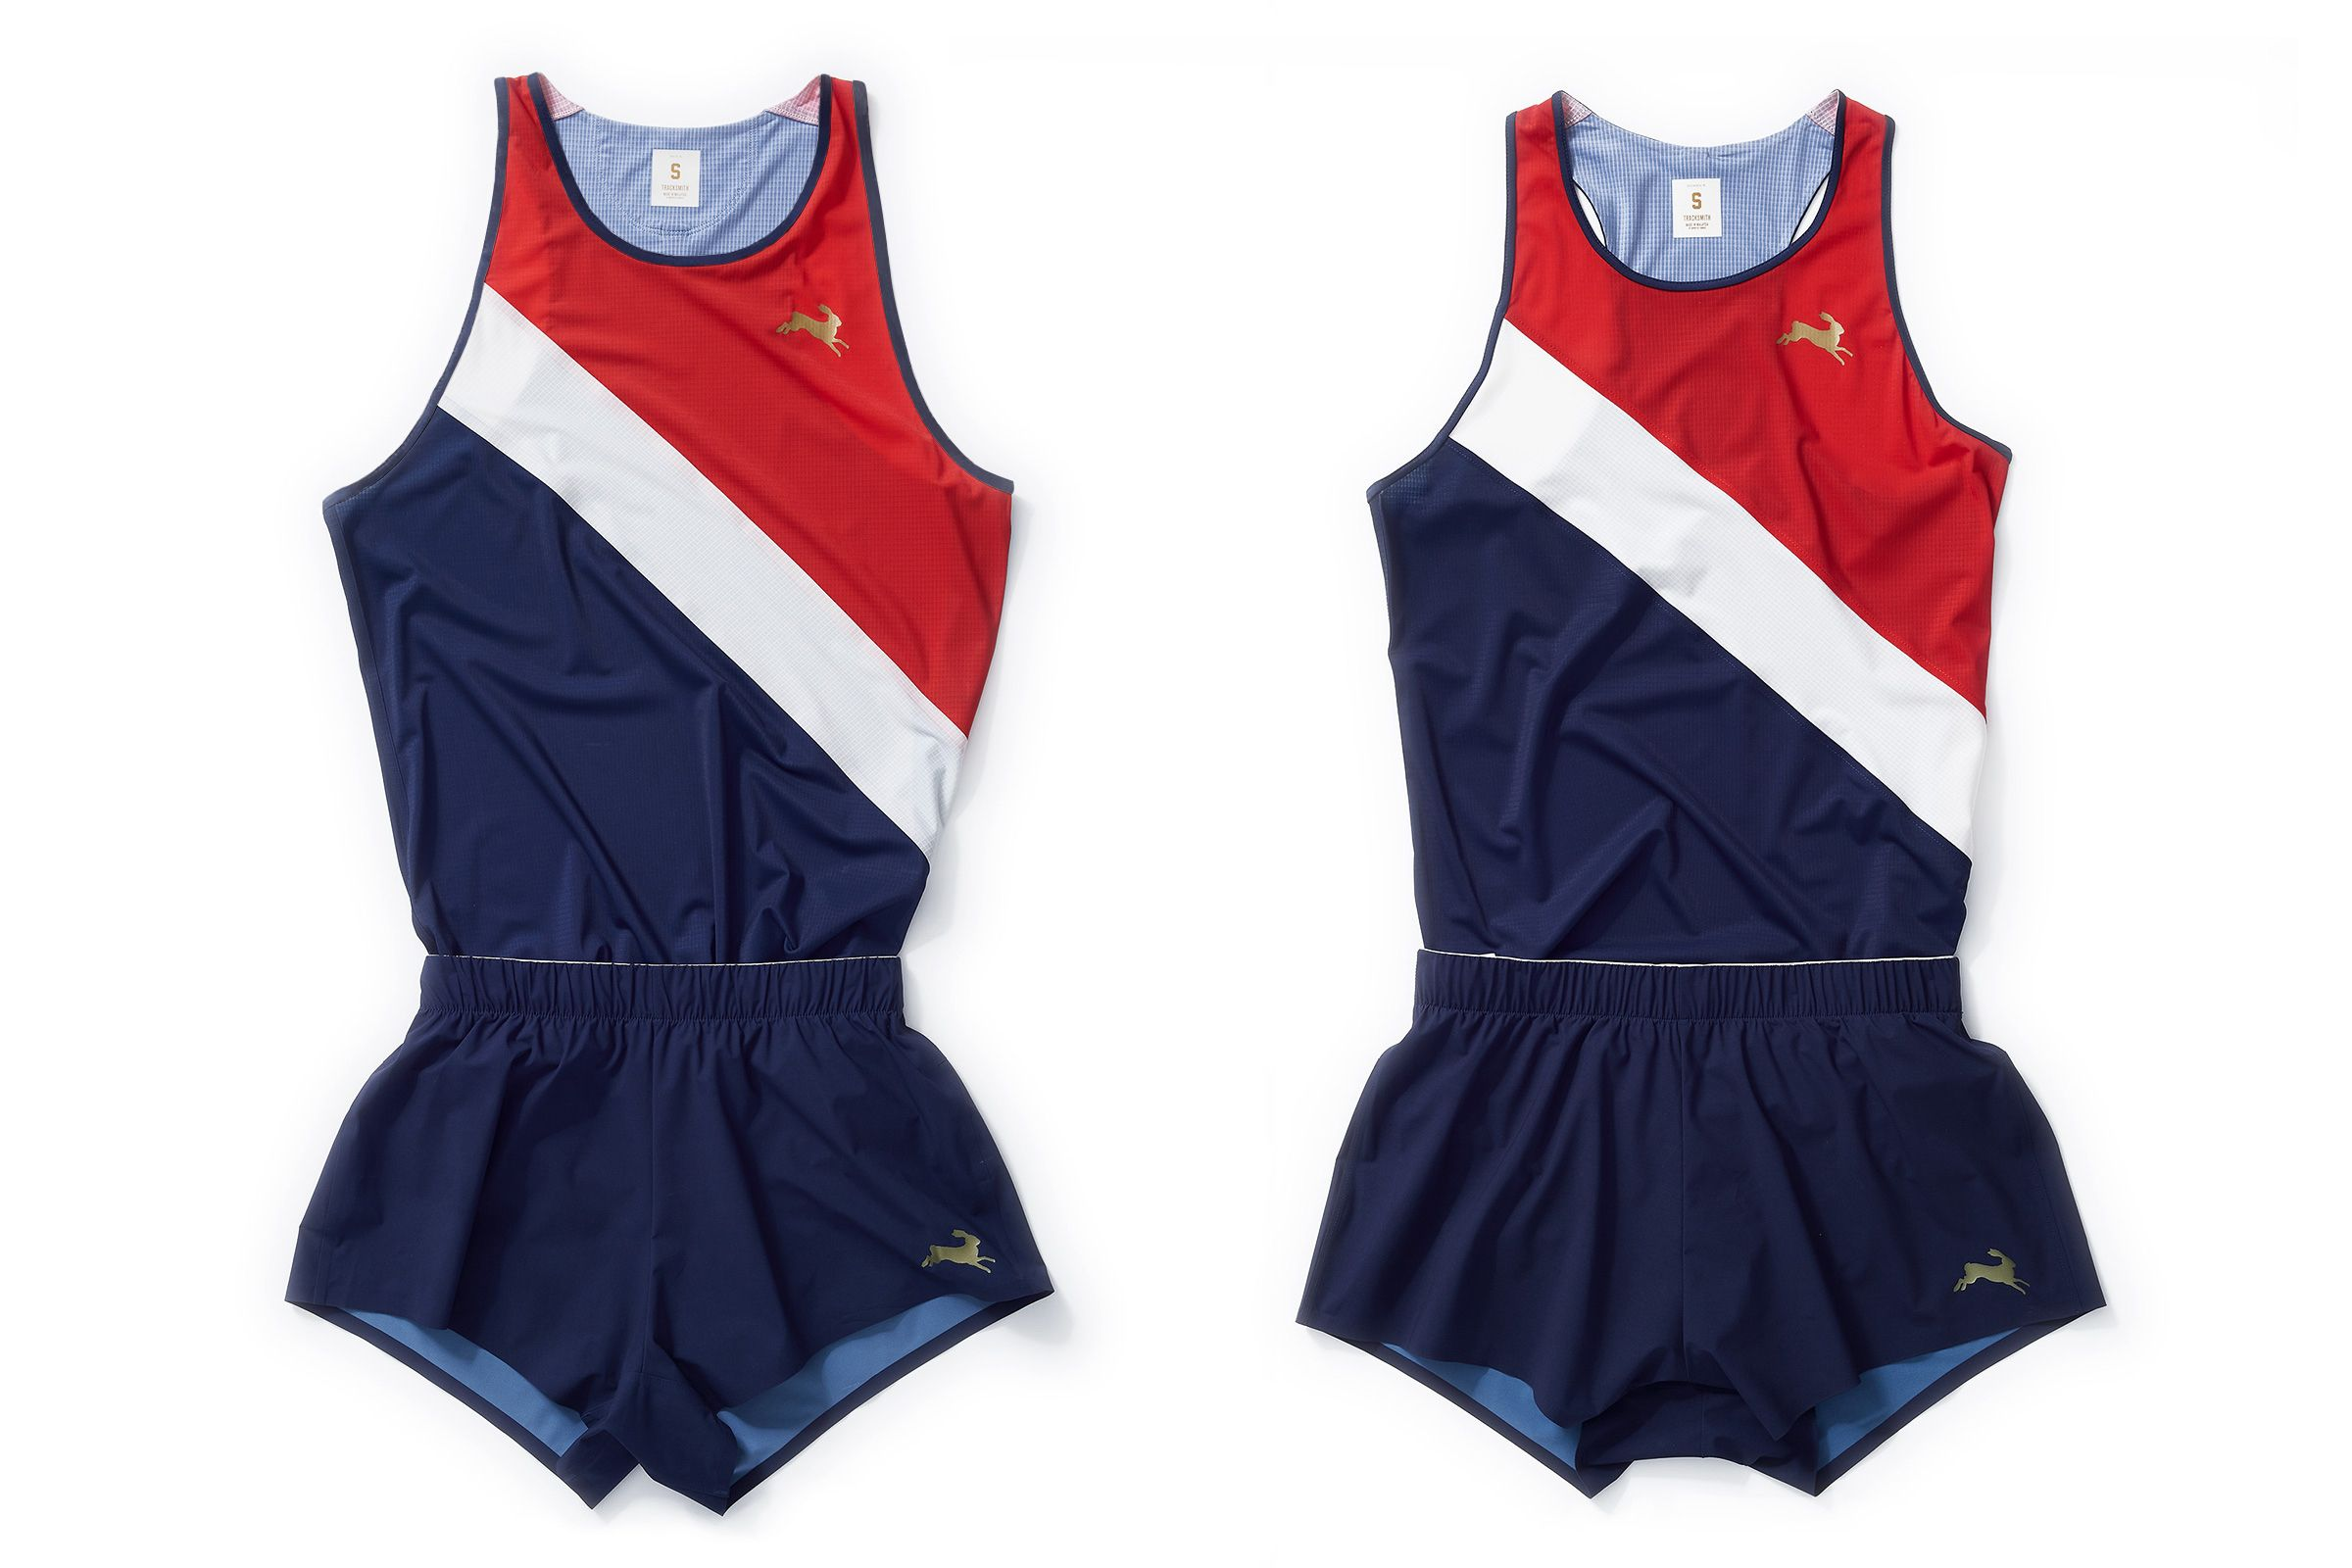 The Singlet That's Taking Over the 2020 Olympic Marathon Trials